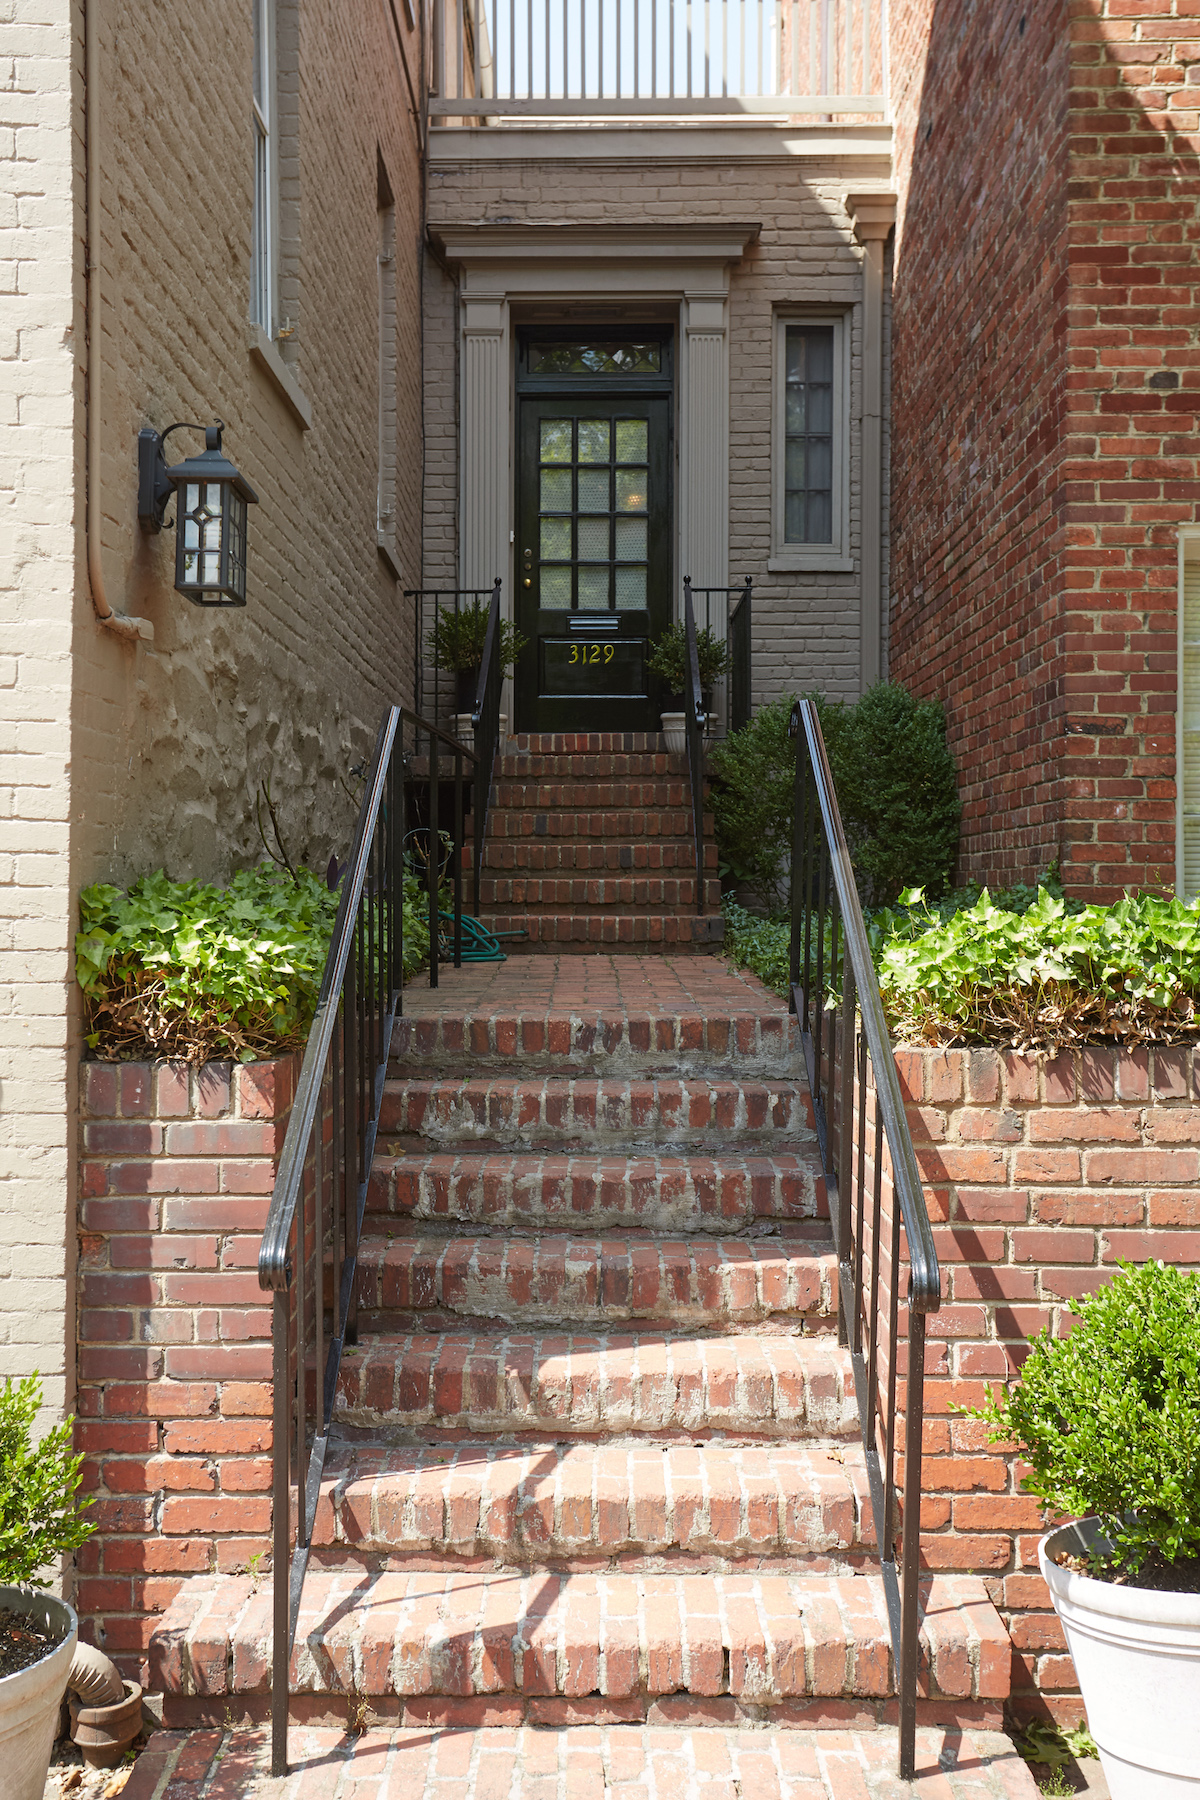 Townhouse for Sale at Georgetown 3129 O Street Nw Washington, District Of Columbia, 20007 United States